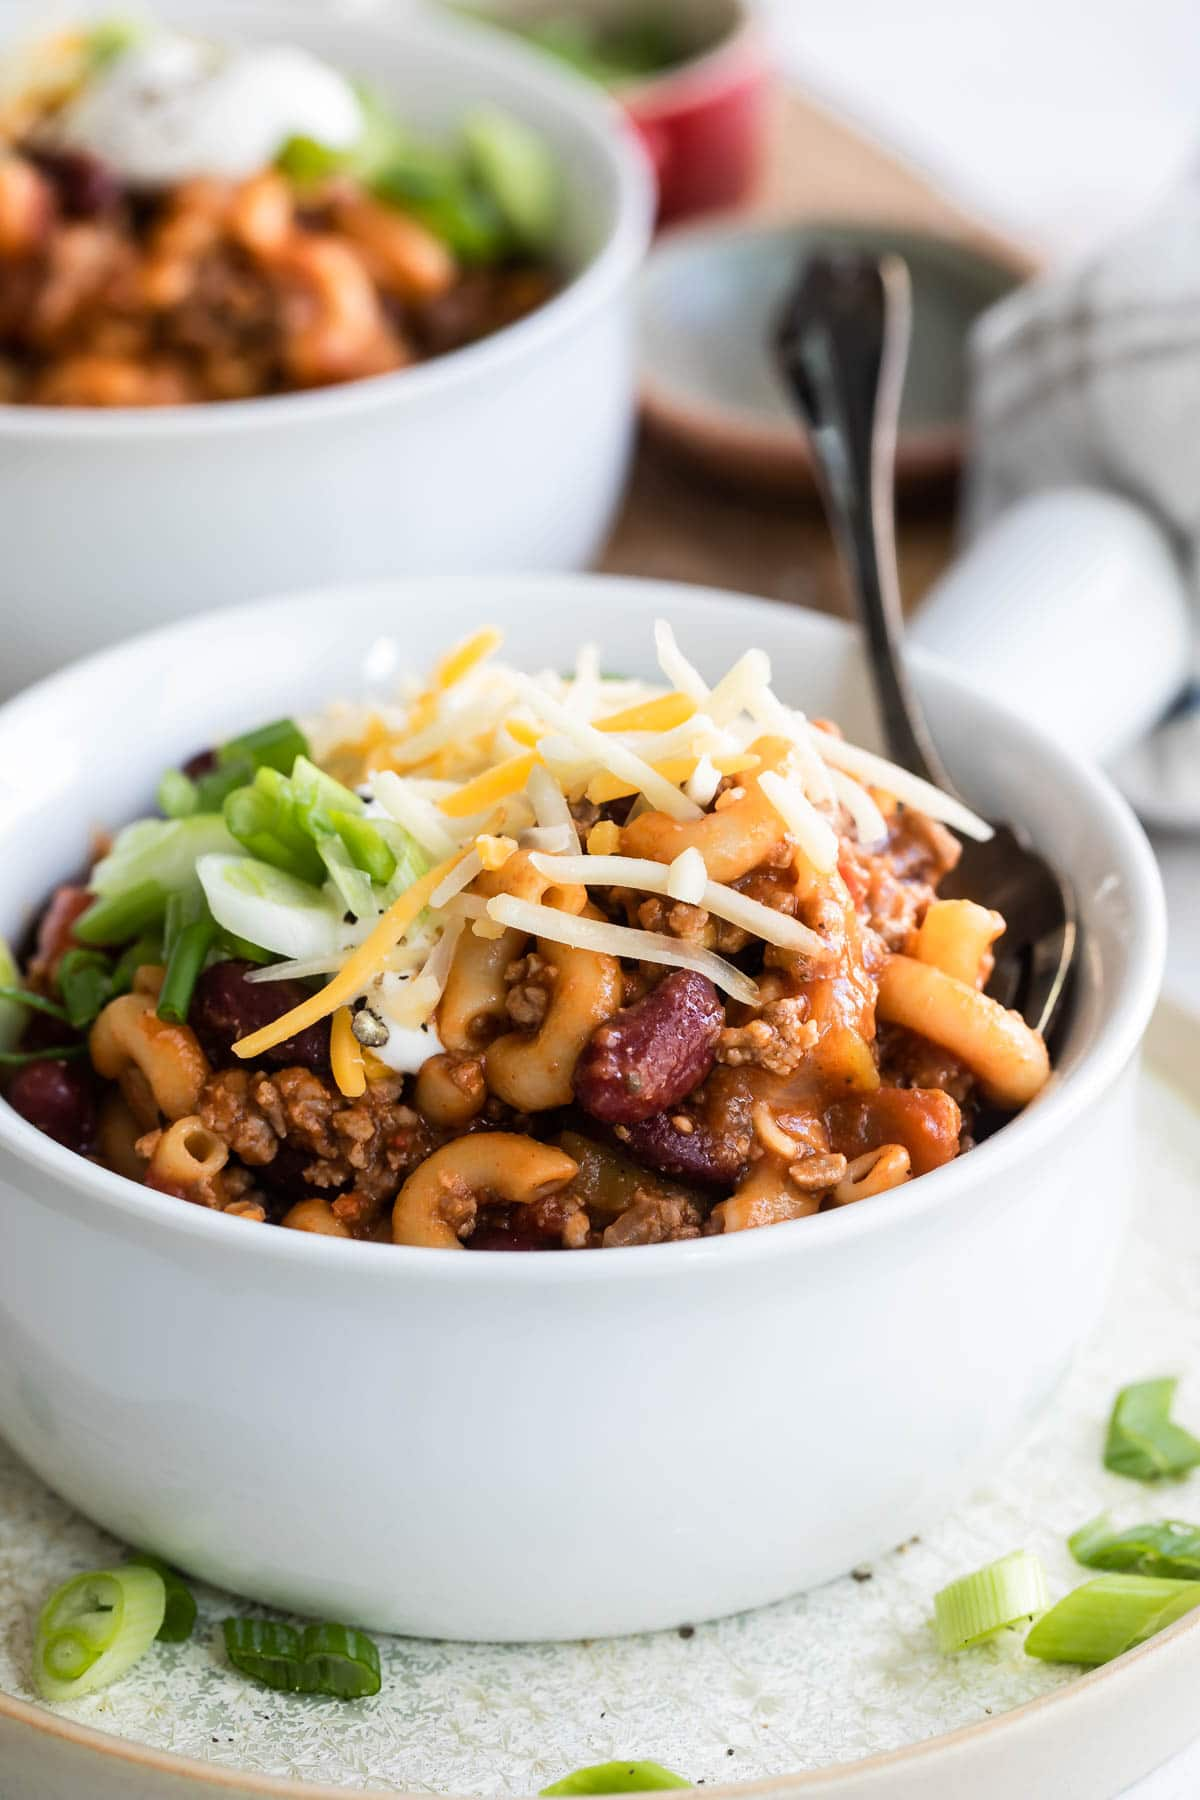 Garnished chili mac in a white handled bowl.